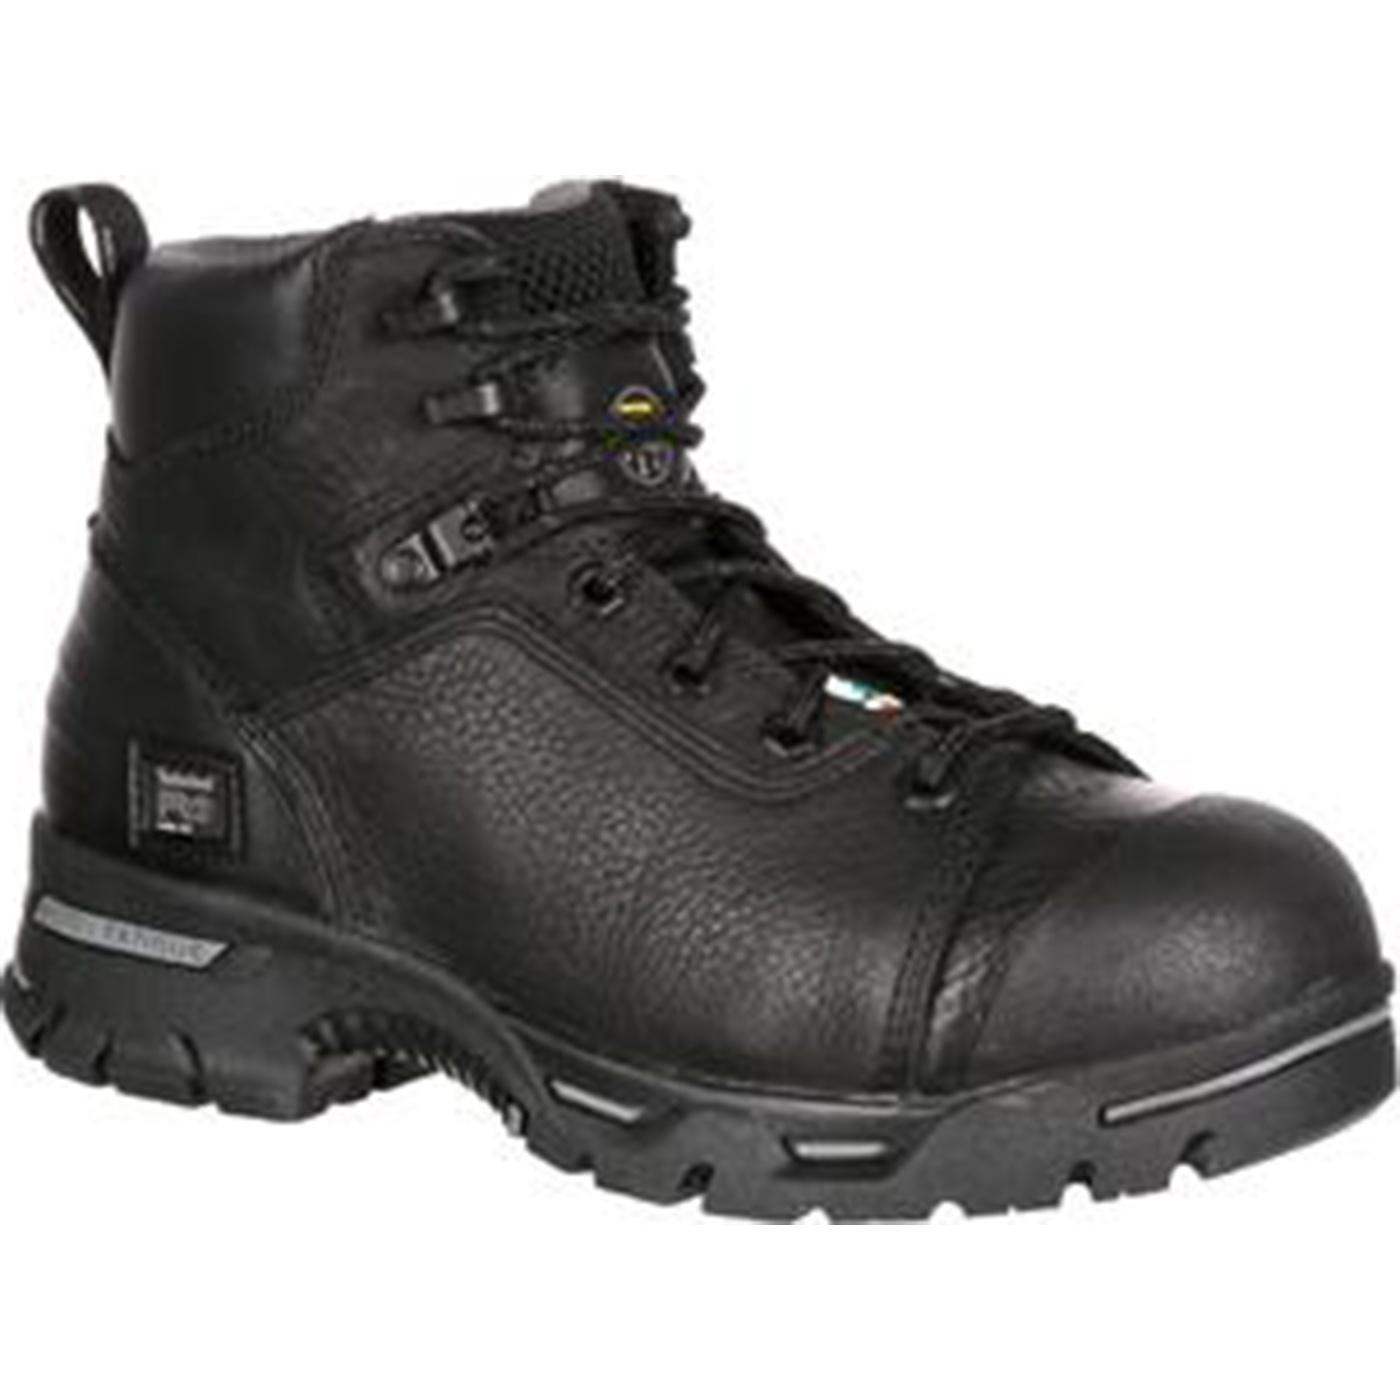 timberland pro endurance steel toe puncture resistant work